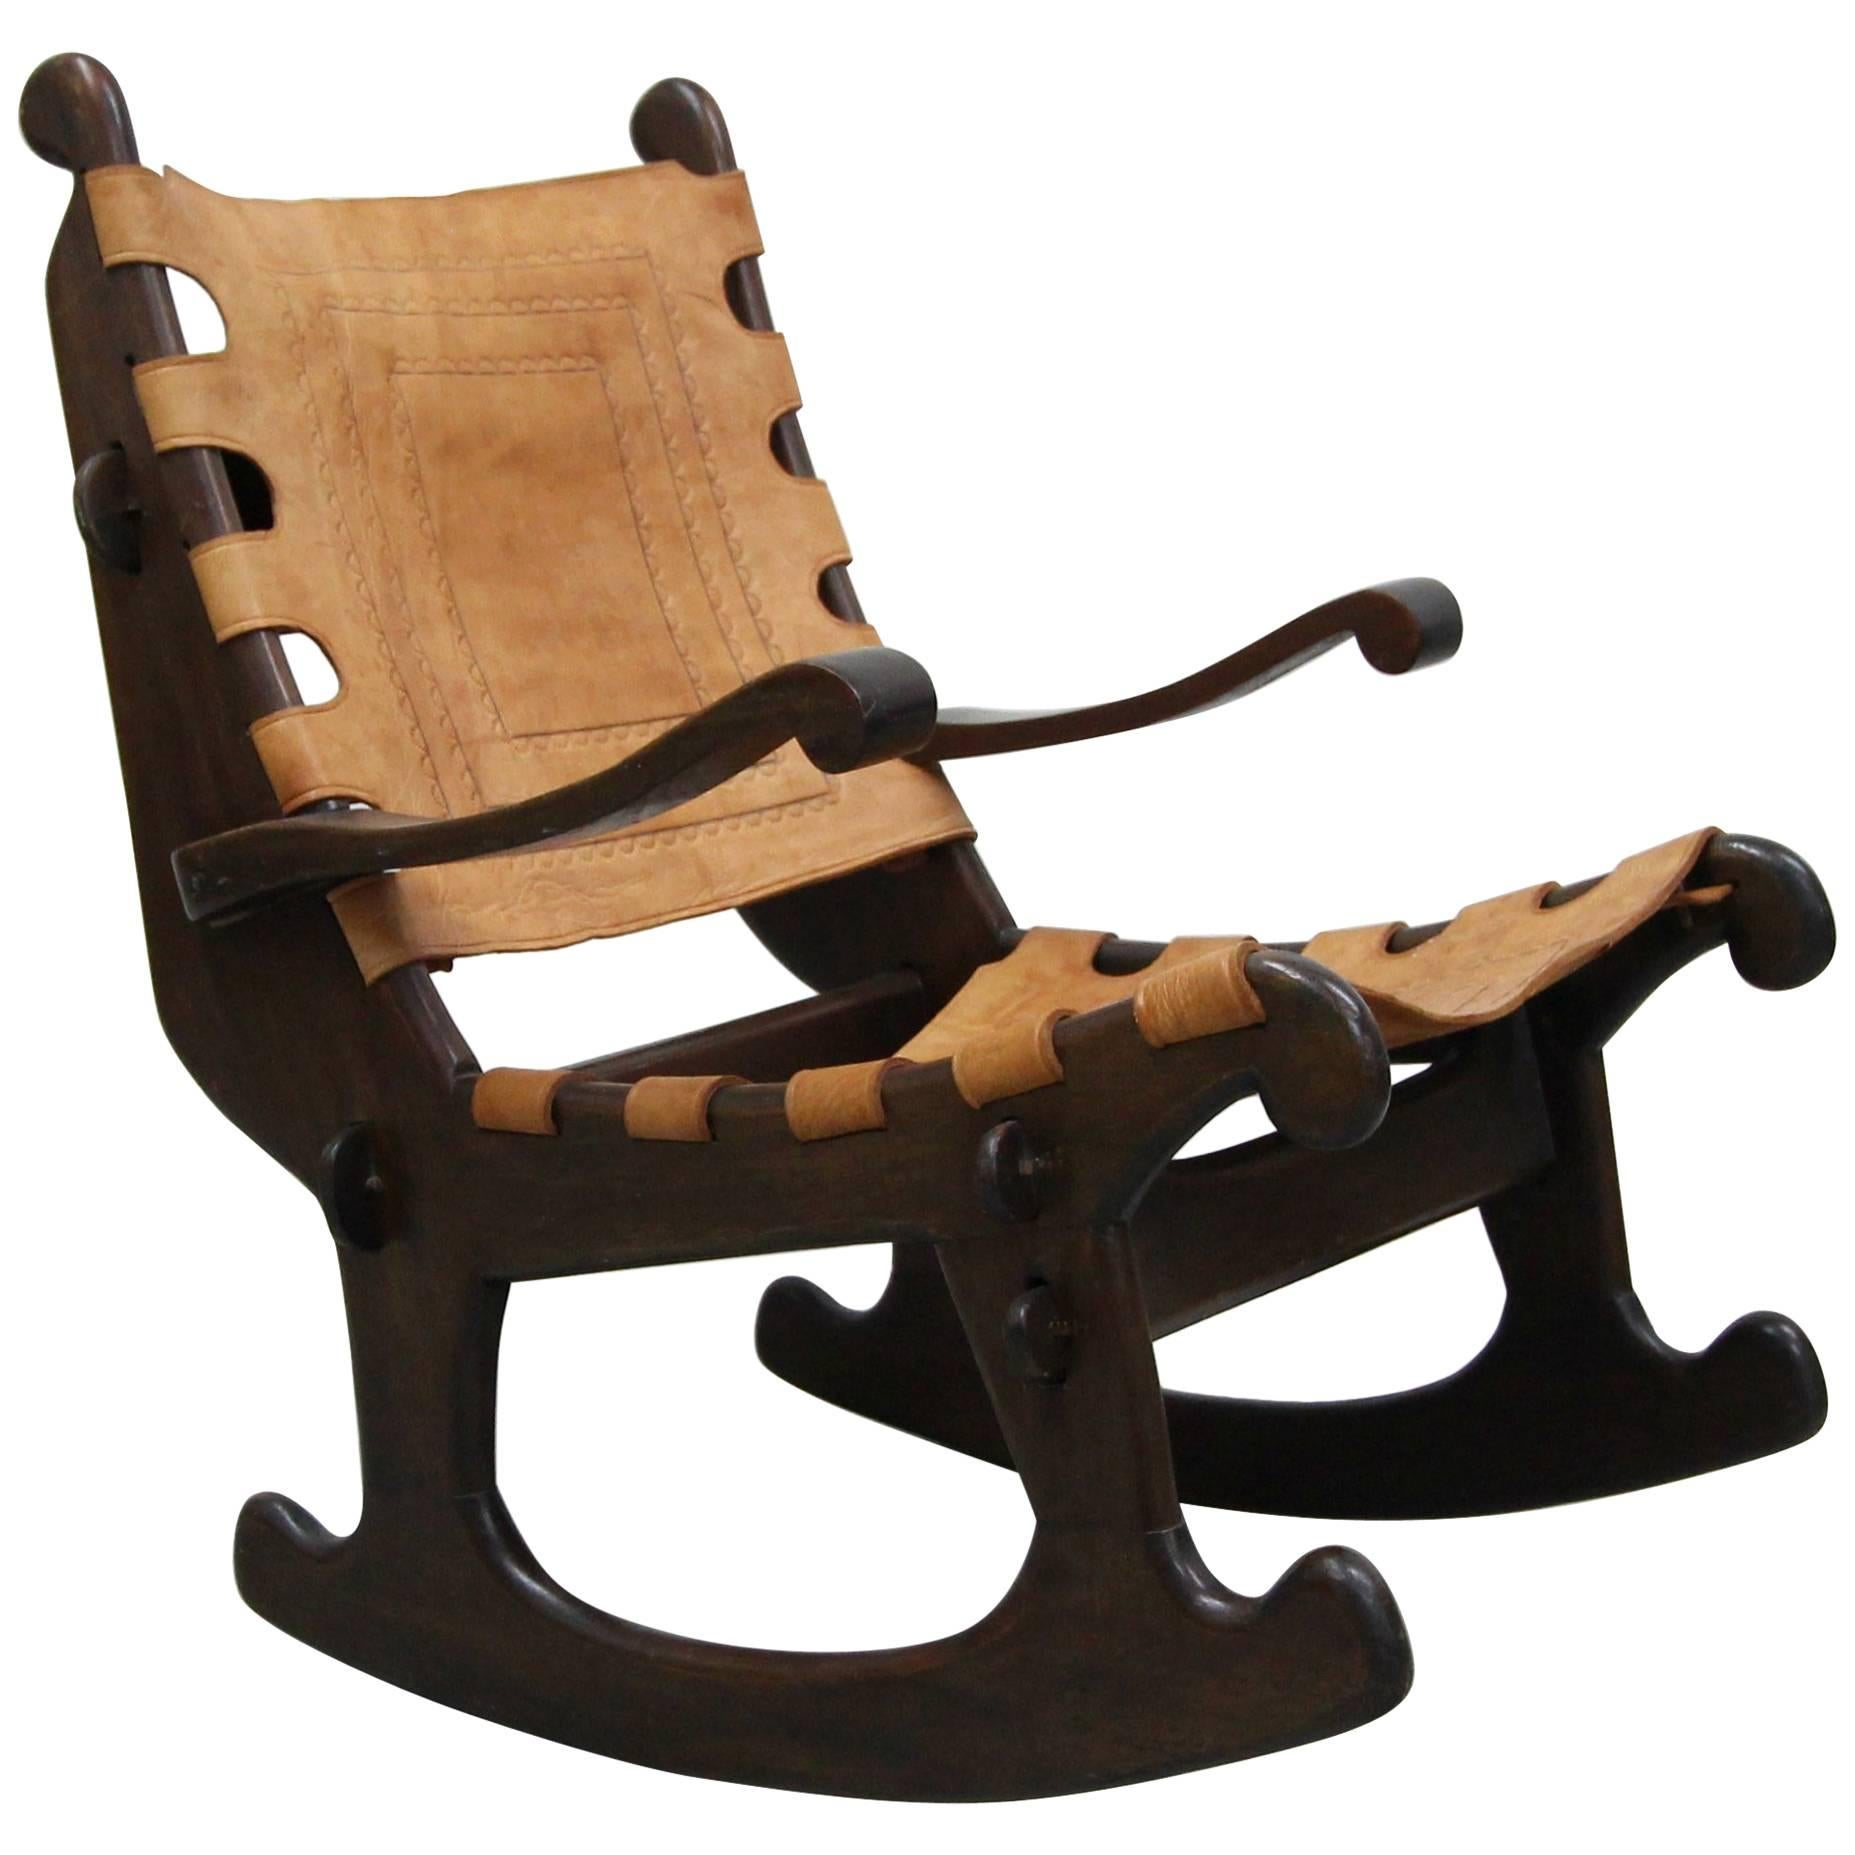 wood rocking chair styles 2 seater primitive style leather and made in ecuador by angel pazmino for sale